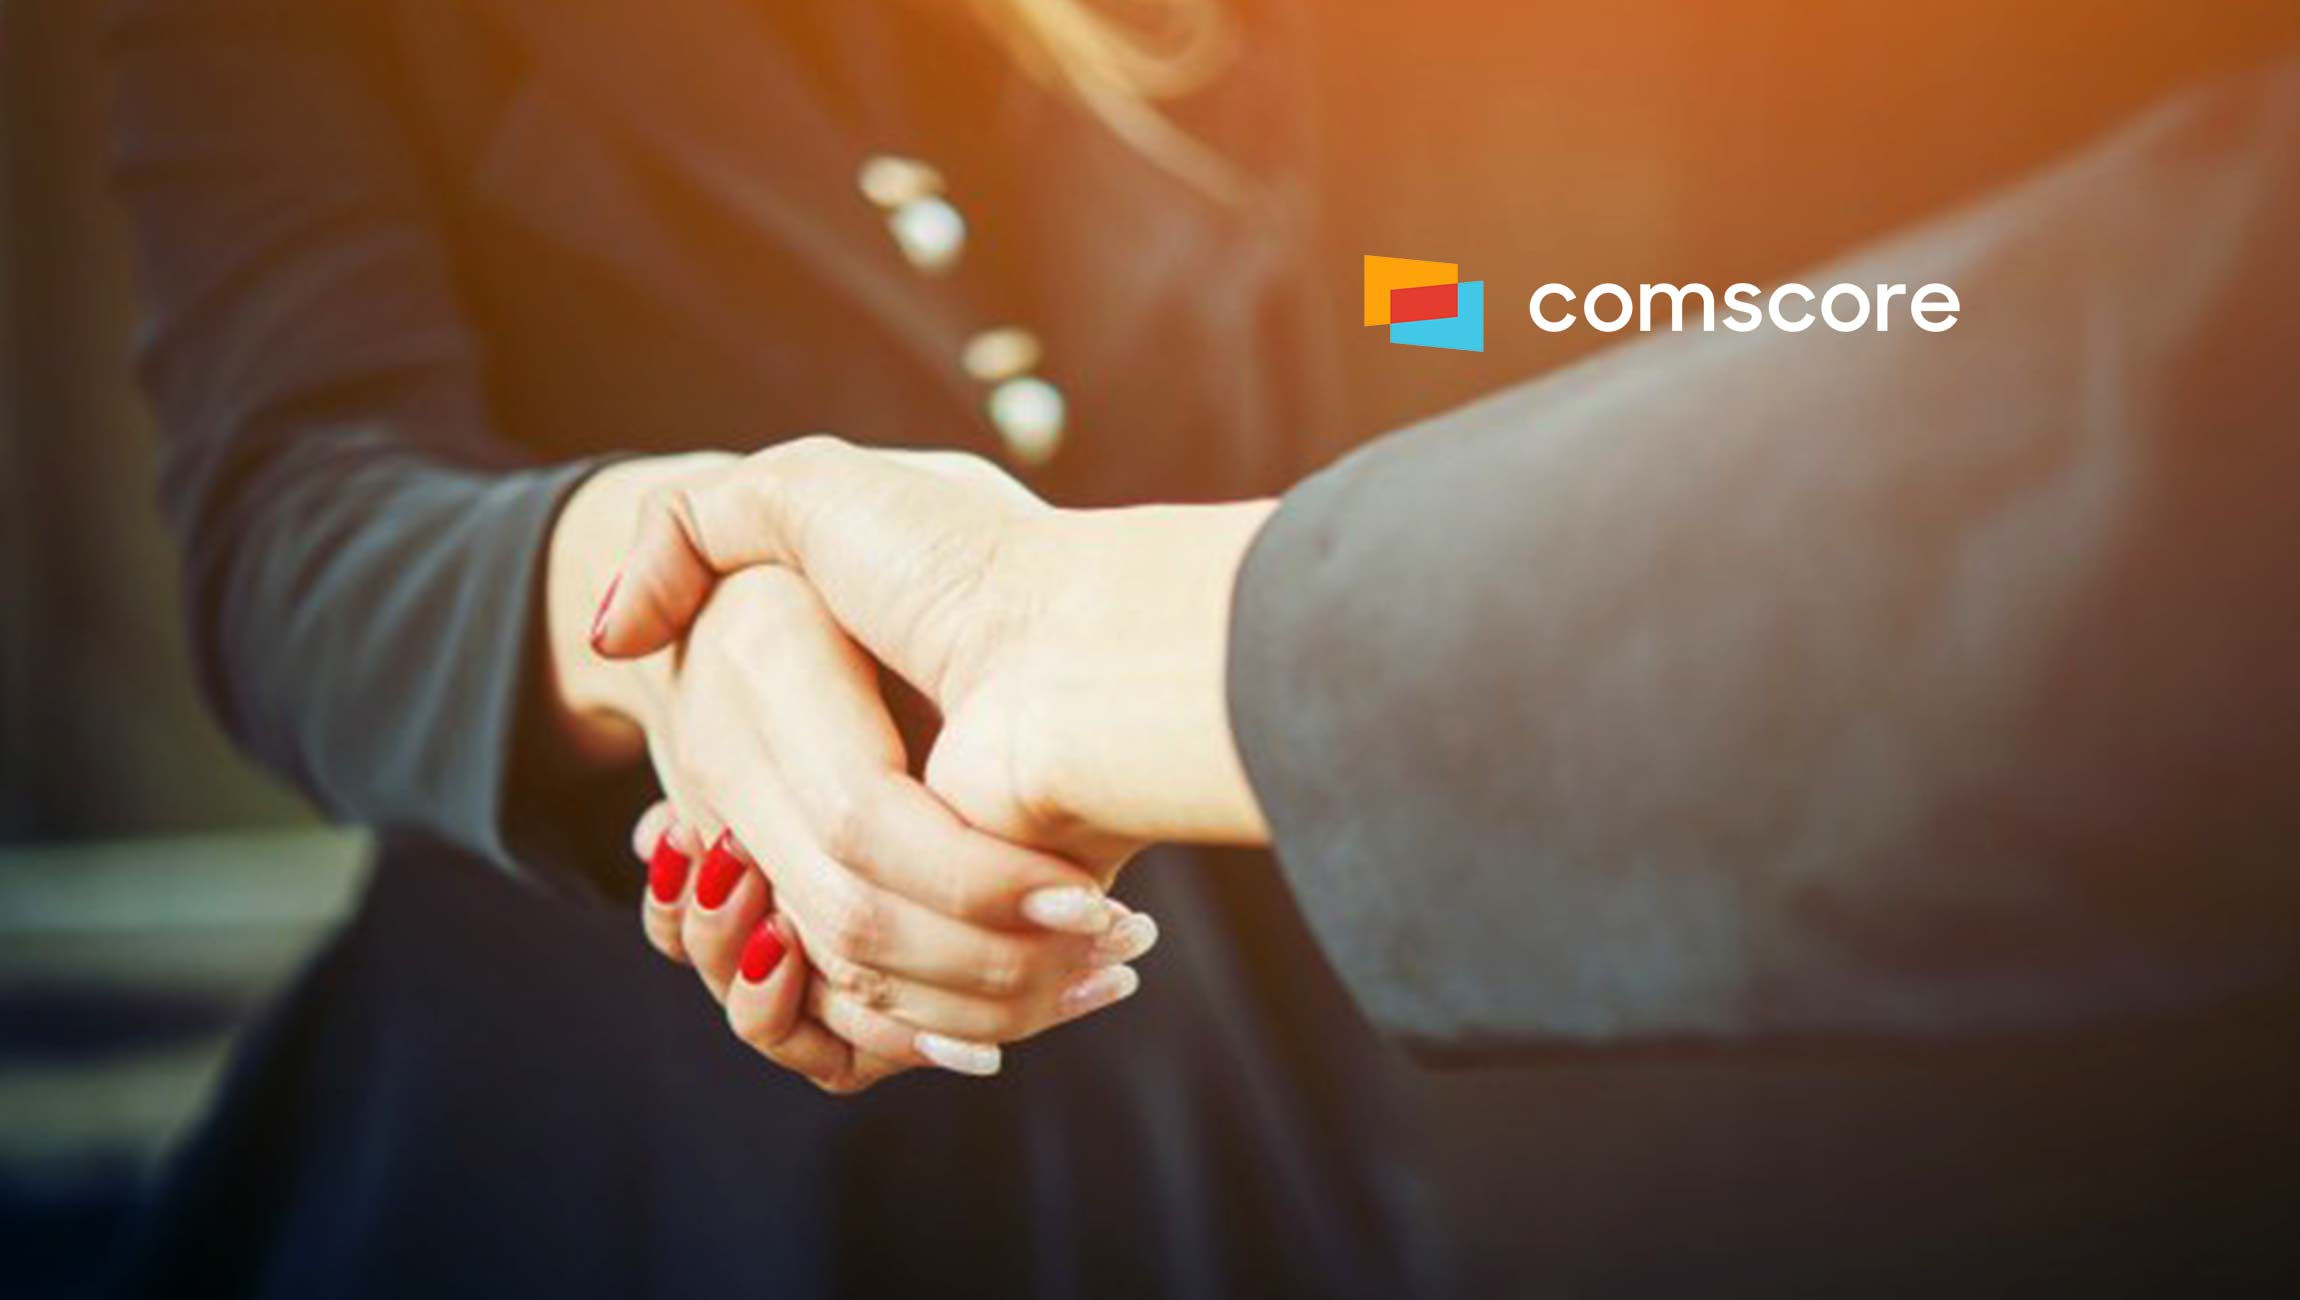 Comscore Signs New Logo Deal With Atlas Obscura for Syndicated Digital Measurement